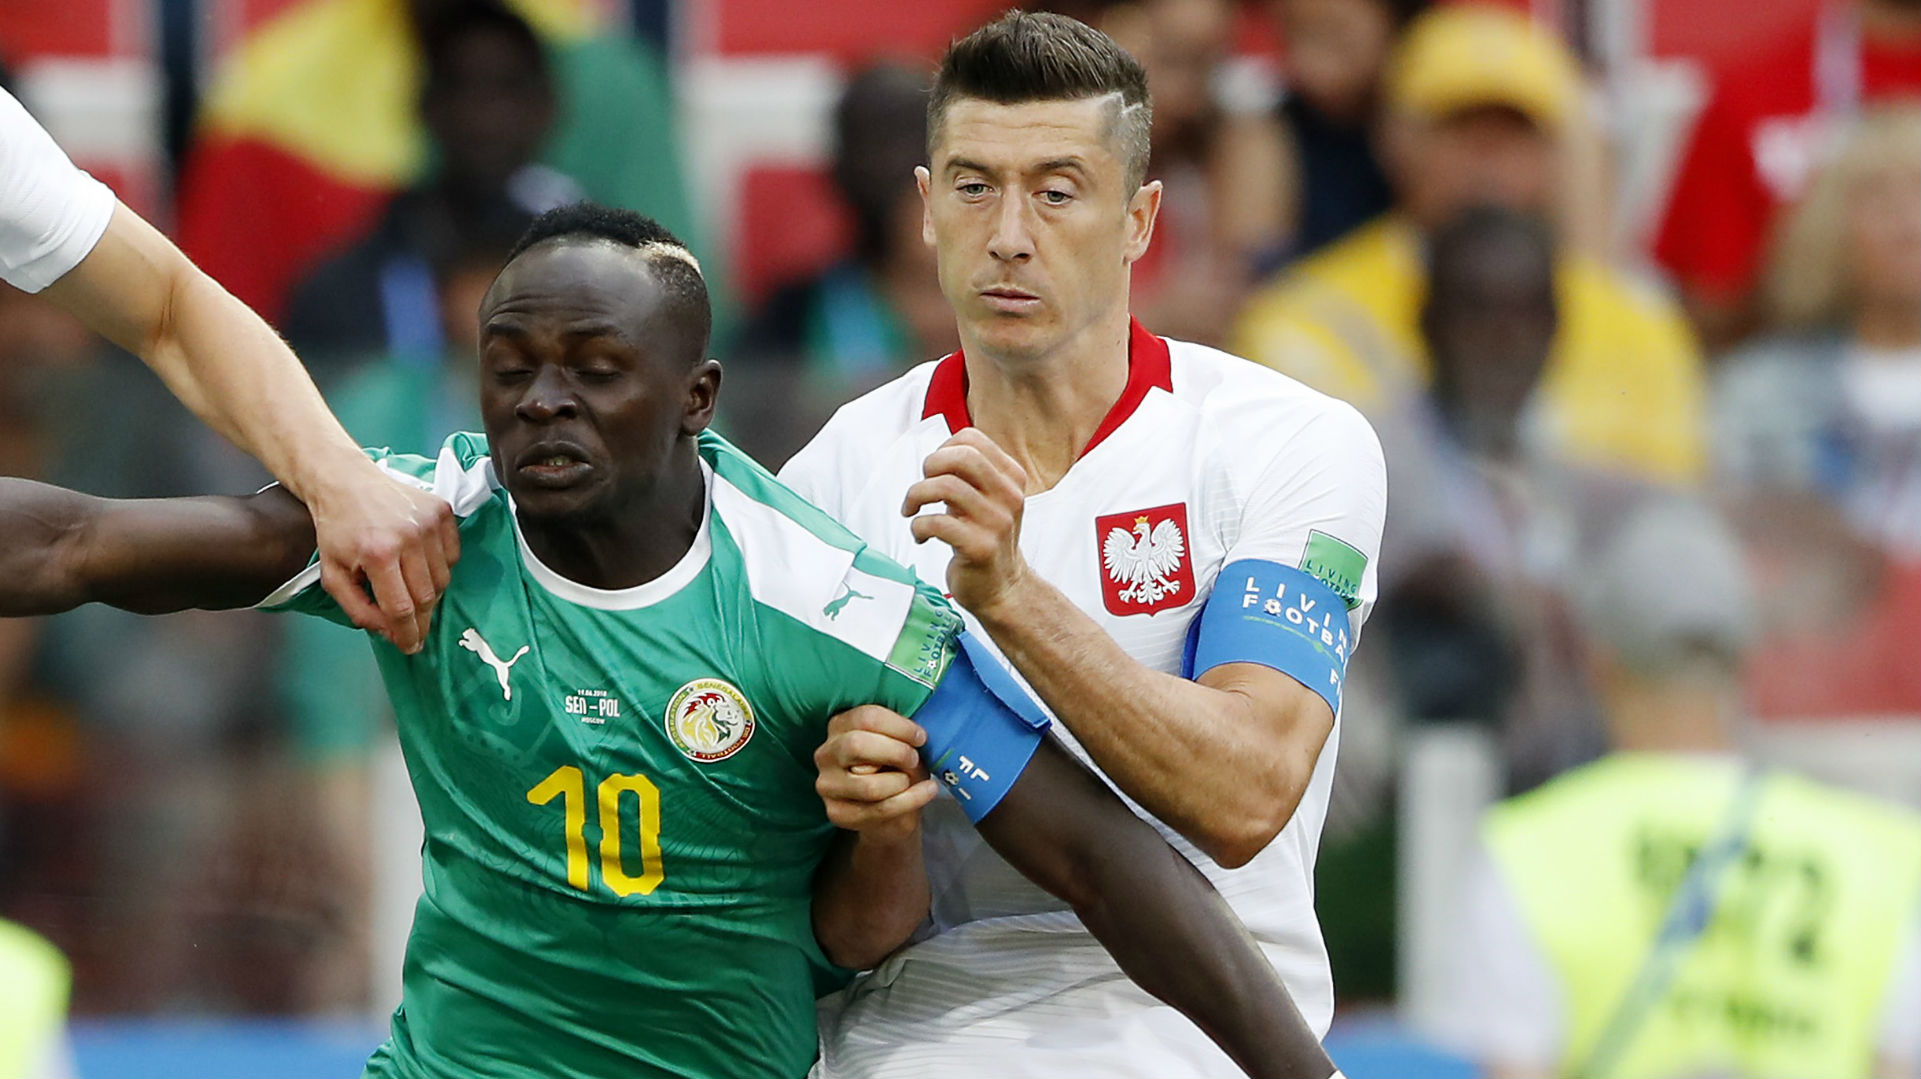 Sadio Mane Senegal Robert Lewandowski Poland World Cup